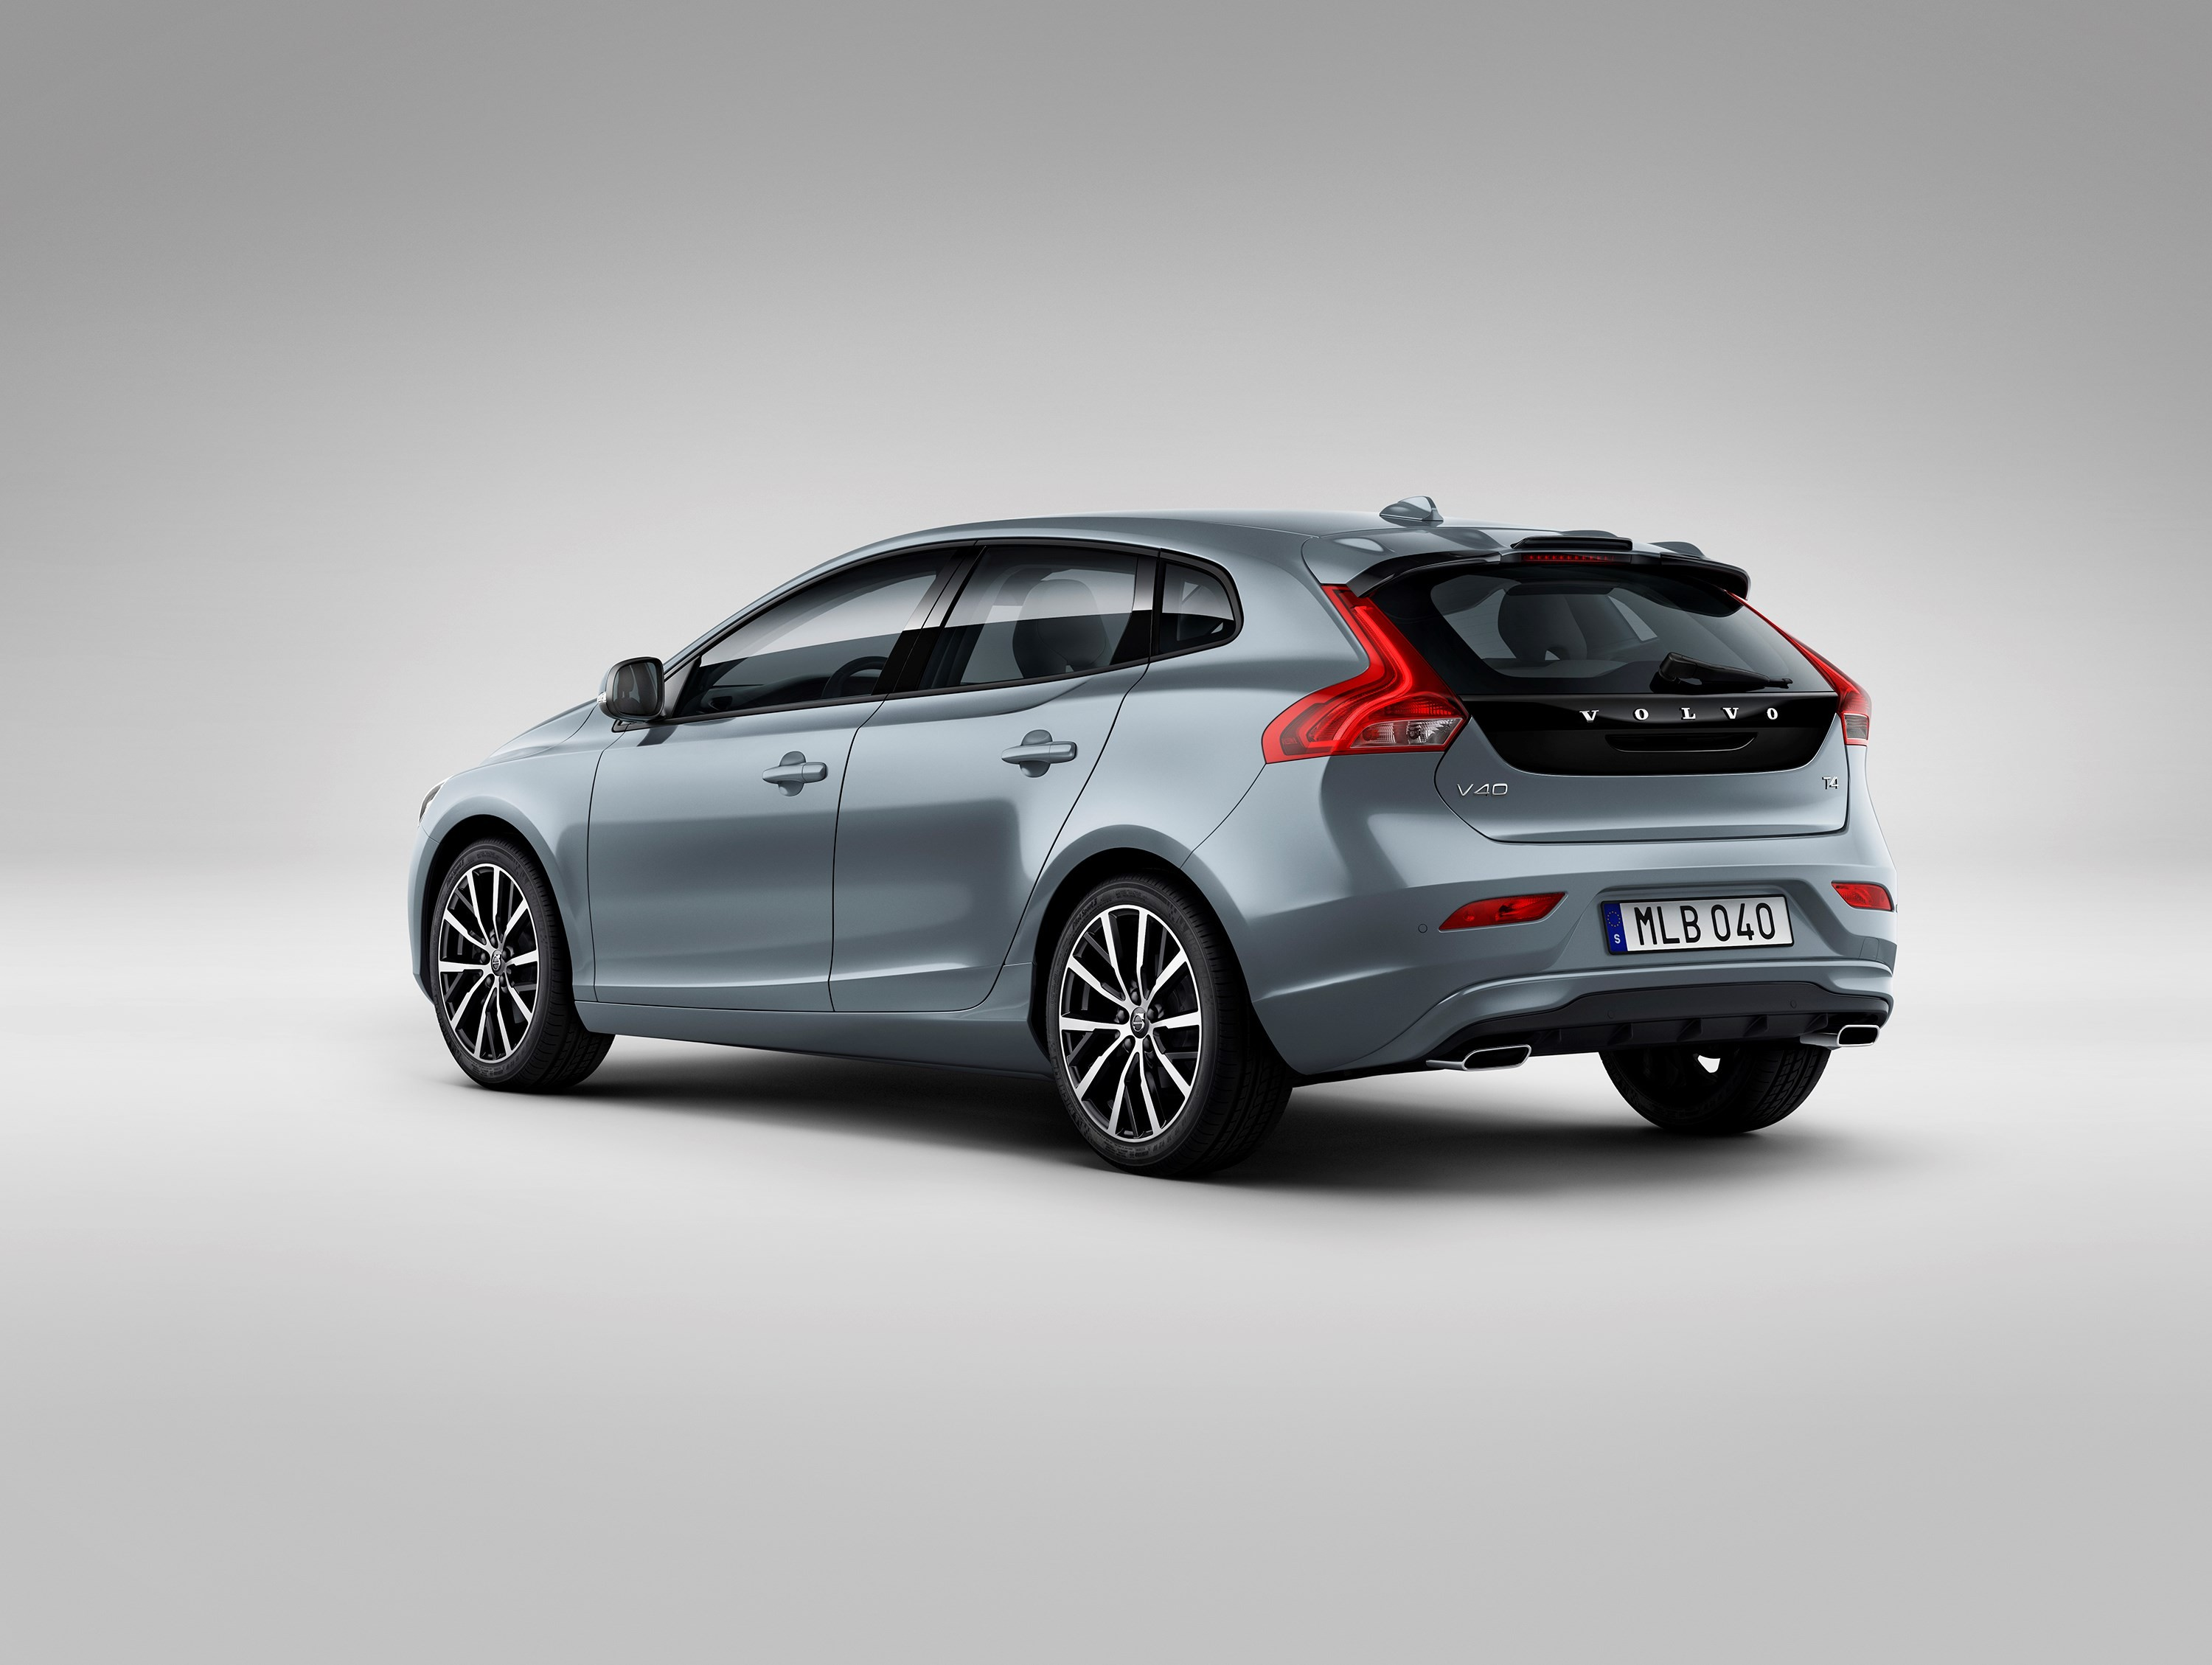 2017 volvo v40 facelift gains new headlights not much. Black Bedroom Furniture Sets. Home Design Ideas